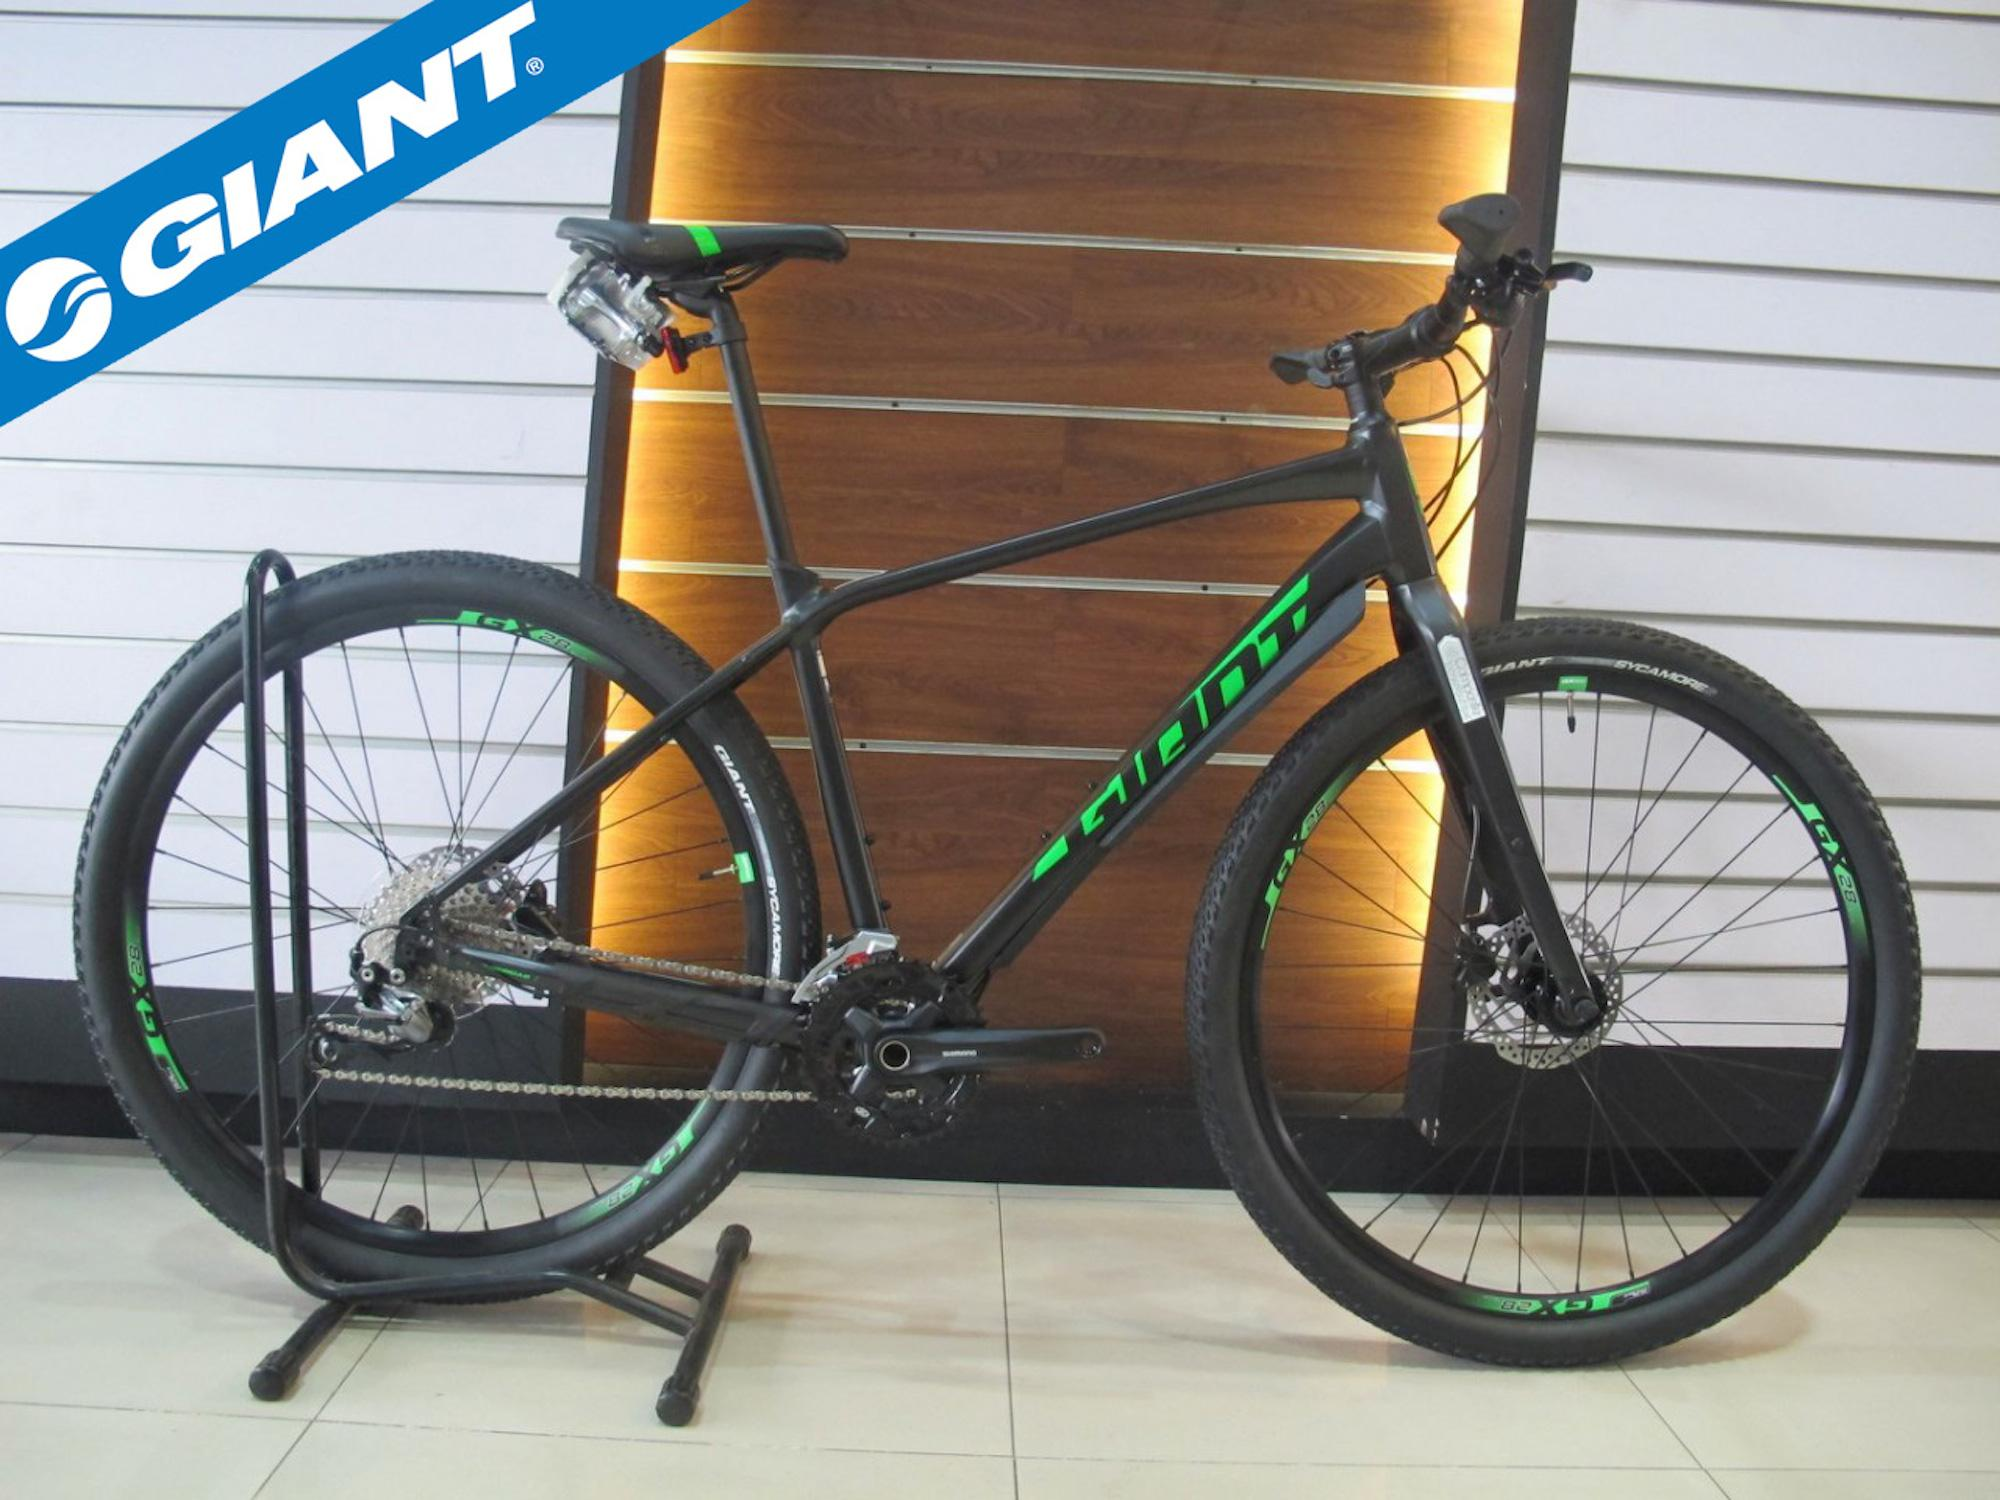 ad8ef4ce2dc Giant Philippines - Giant Mountain Bike for sale - prices & reviews ...